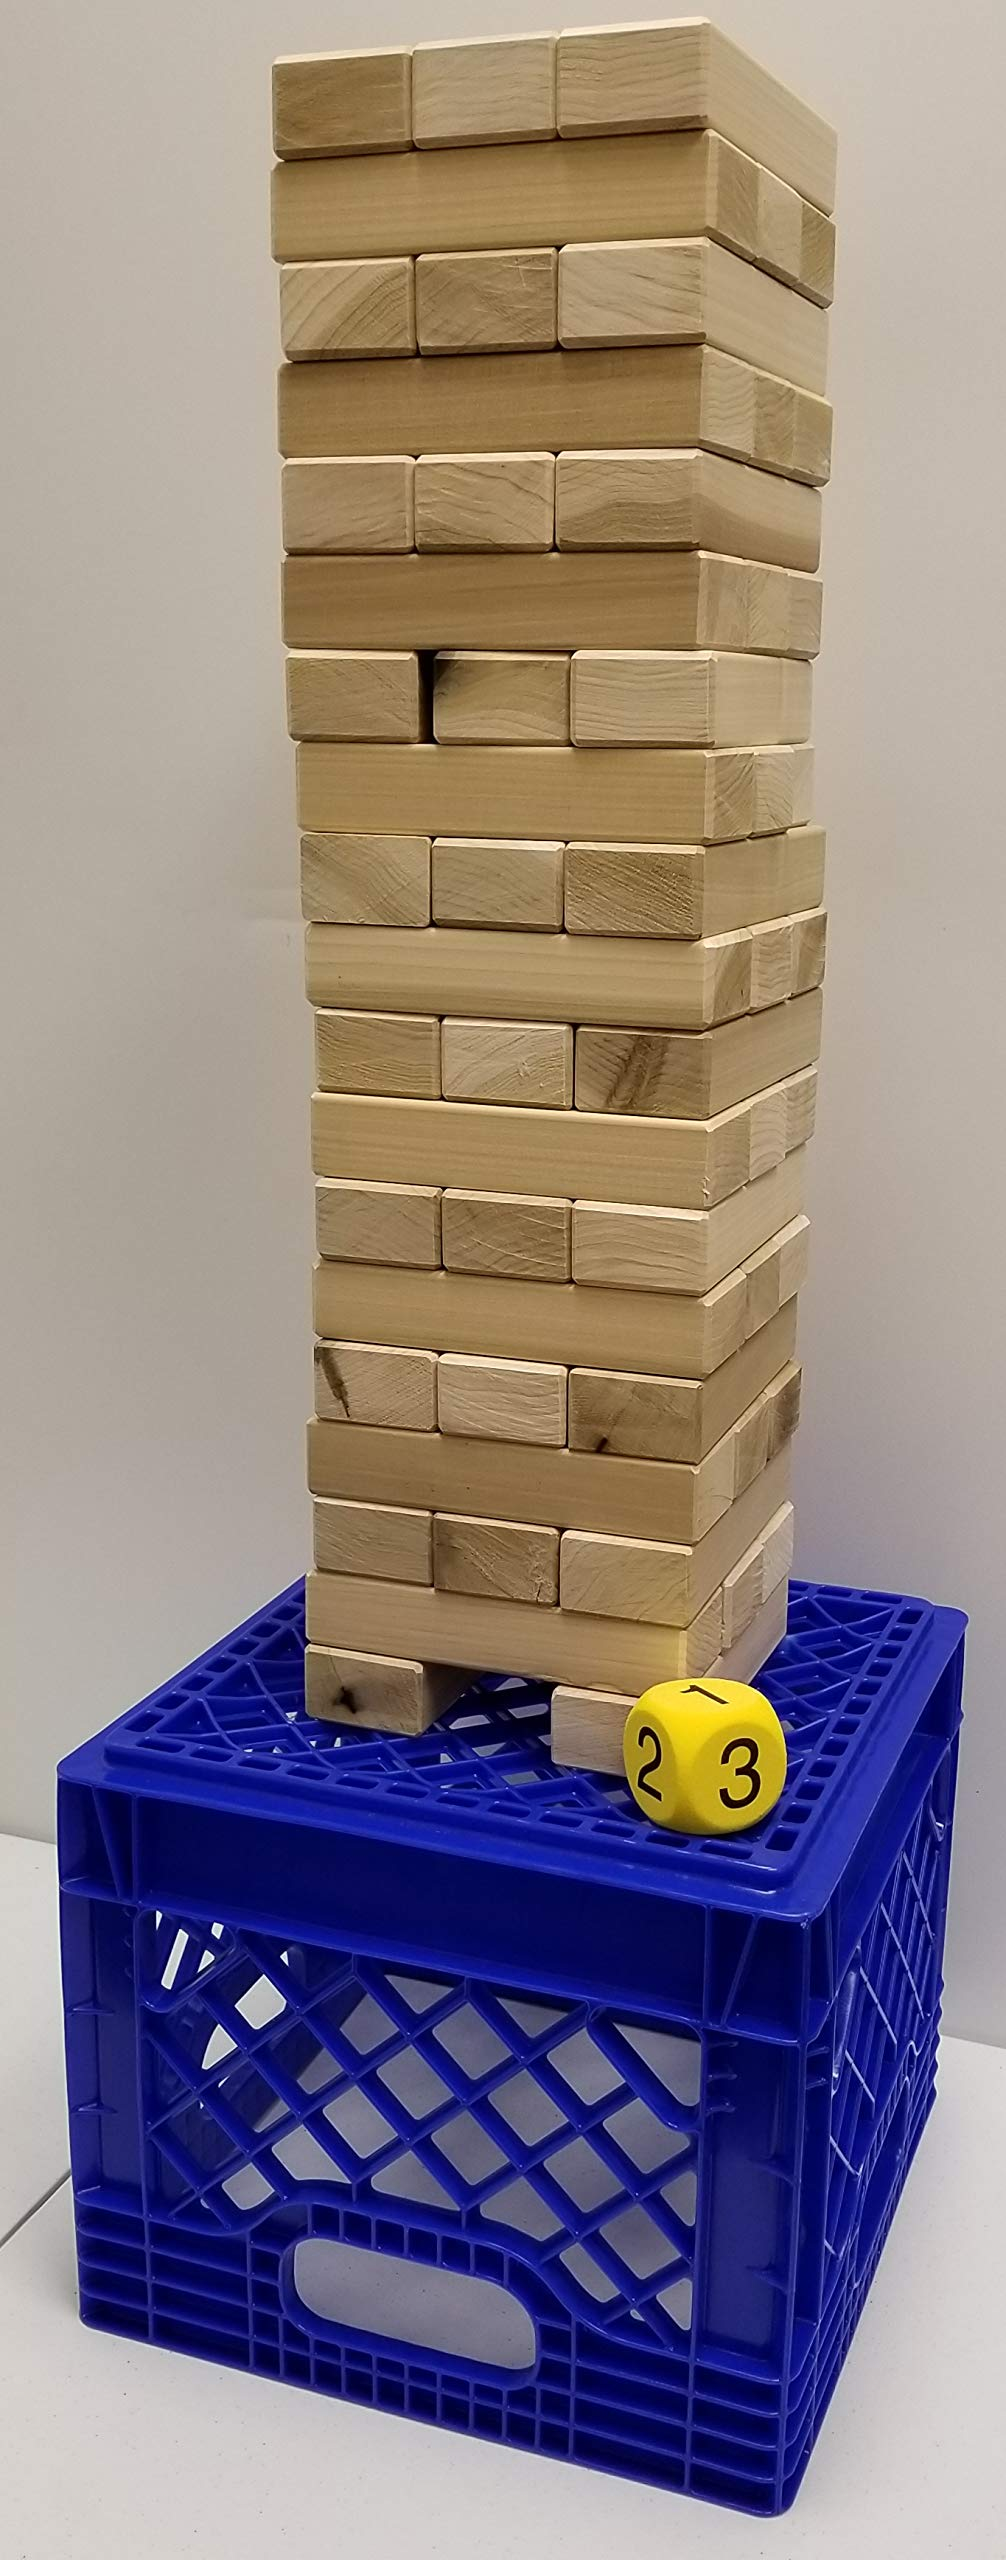 Genuine Hardwood Giant Tumbling Stacking Timbers Game with Storage Crate - Made in USA